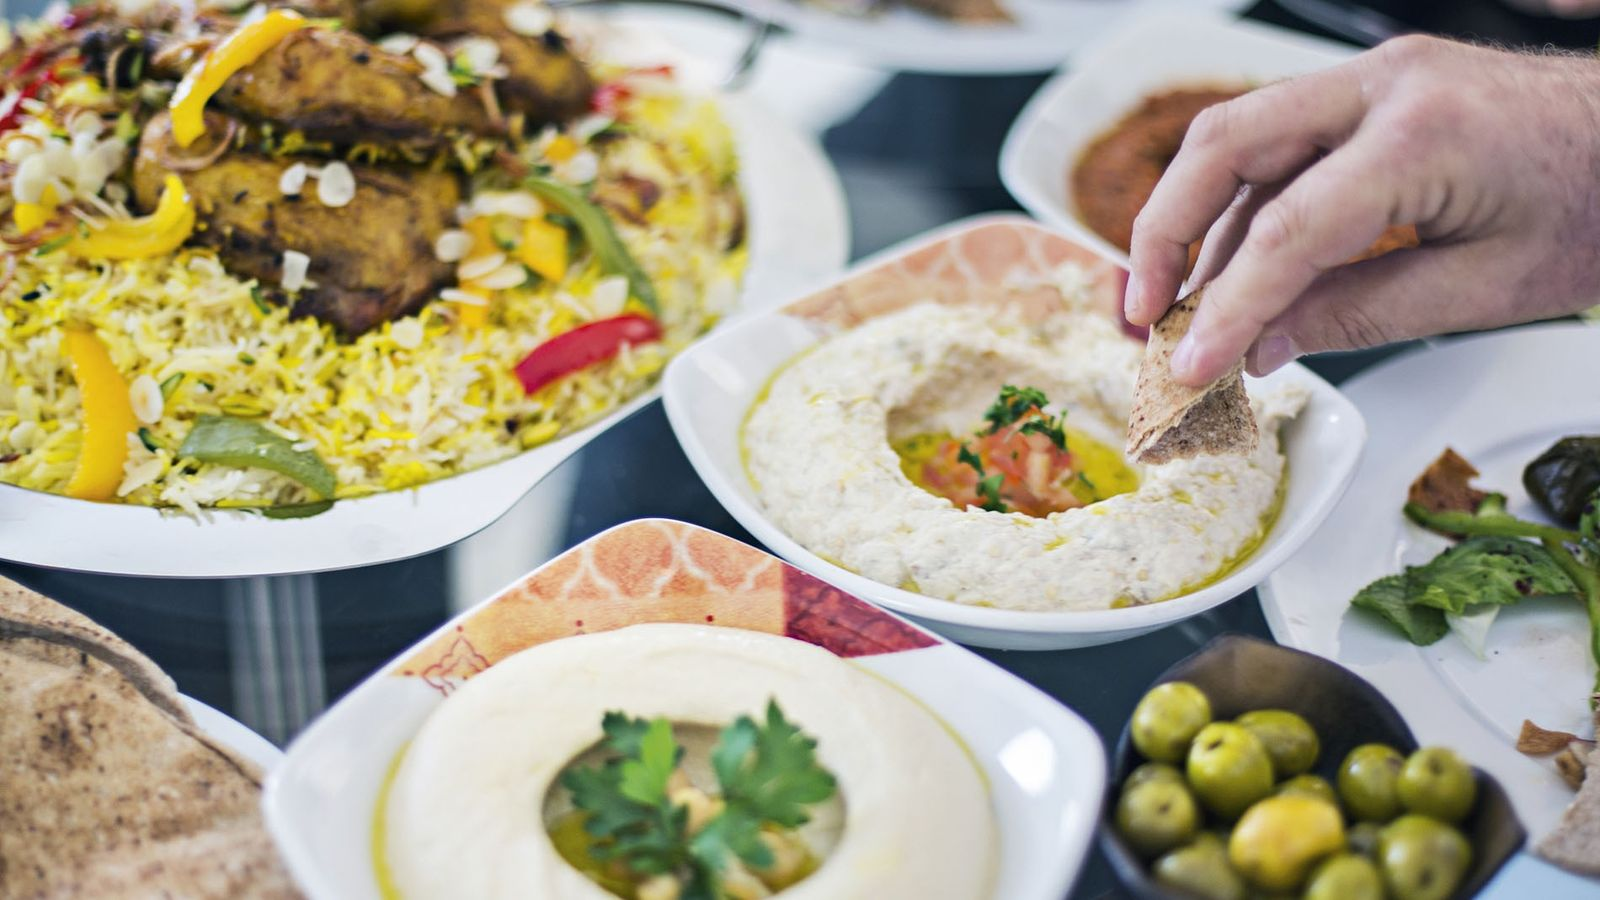 Dinning table filled with different mezze.